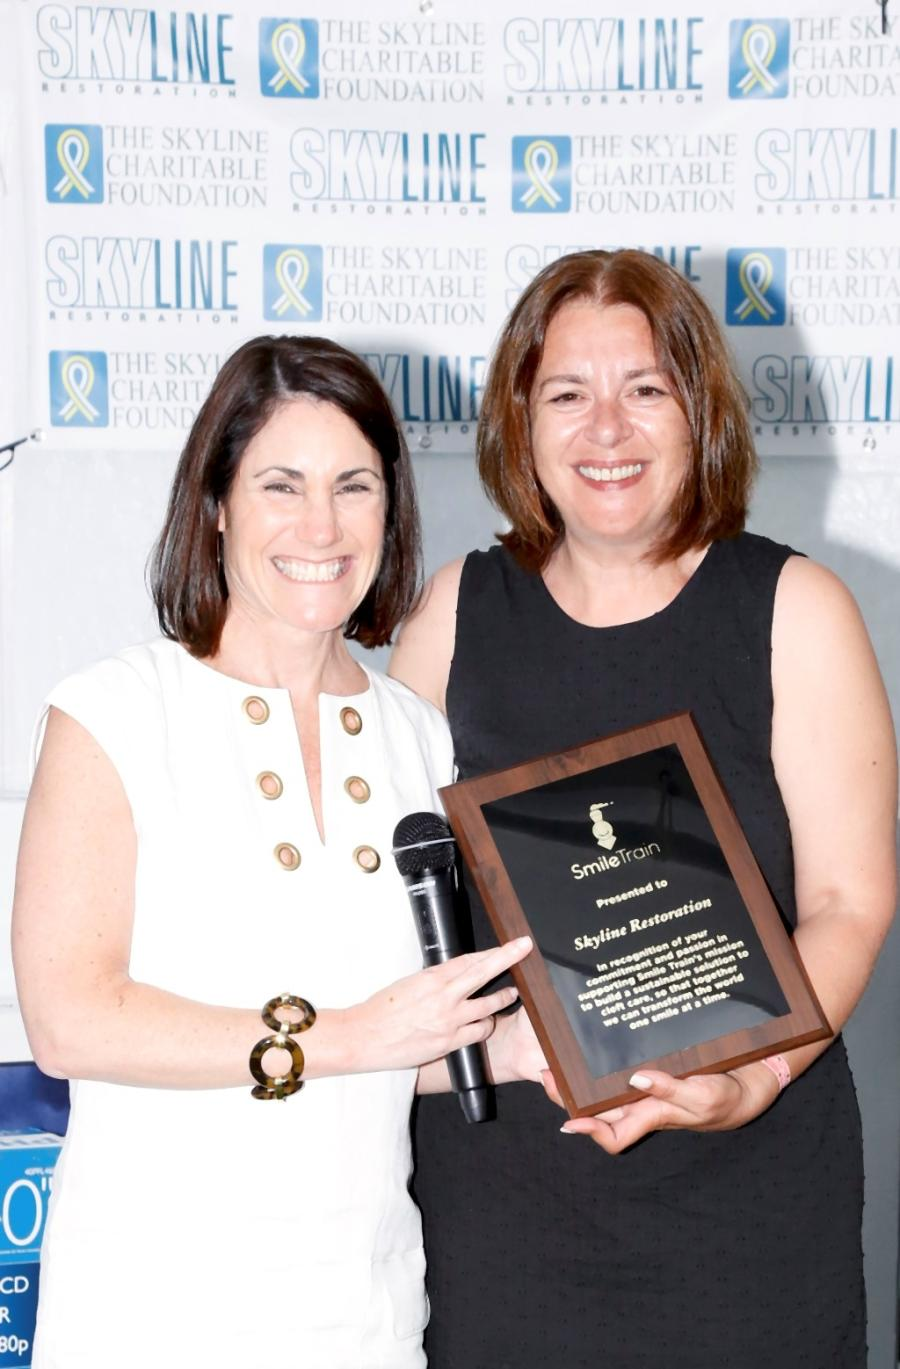 George Constantinou photo